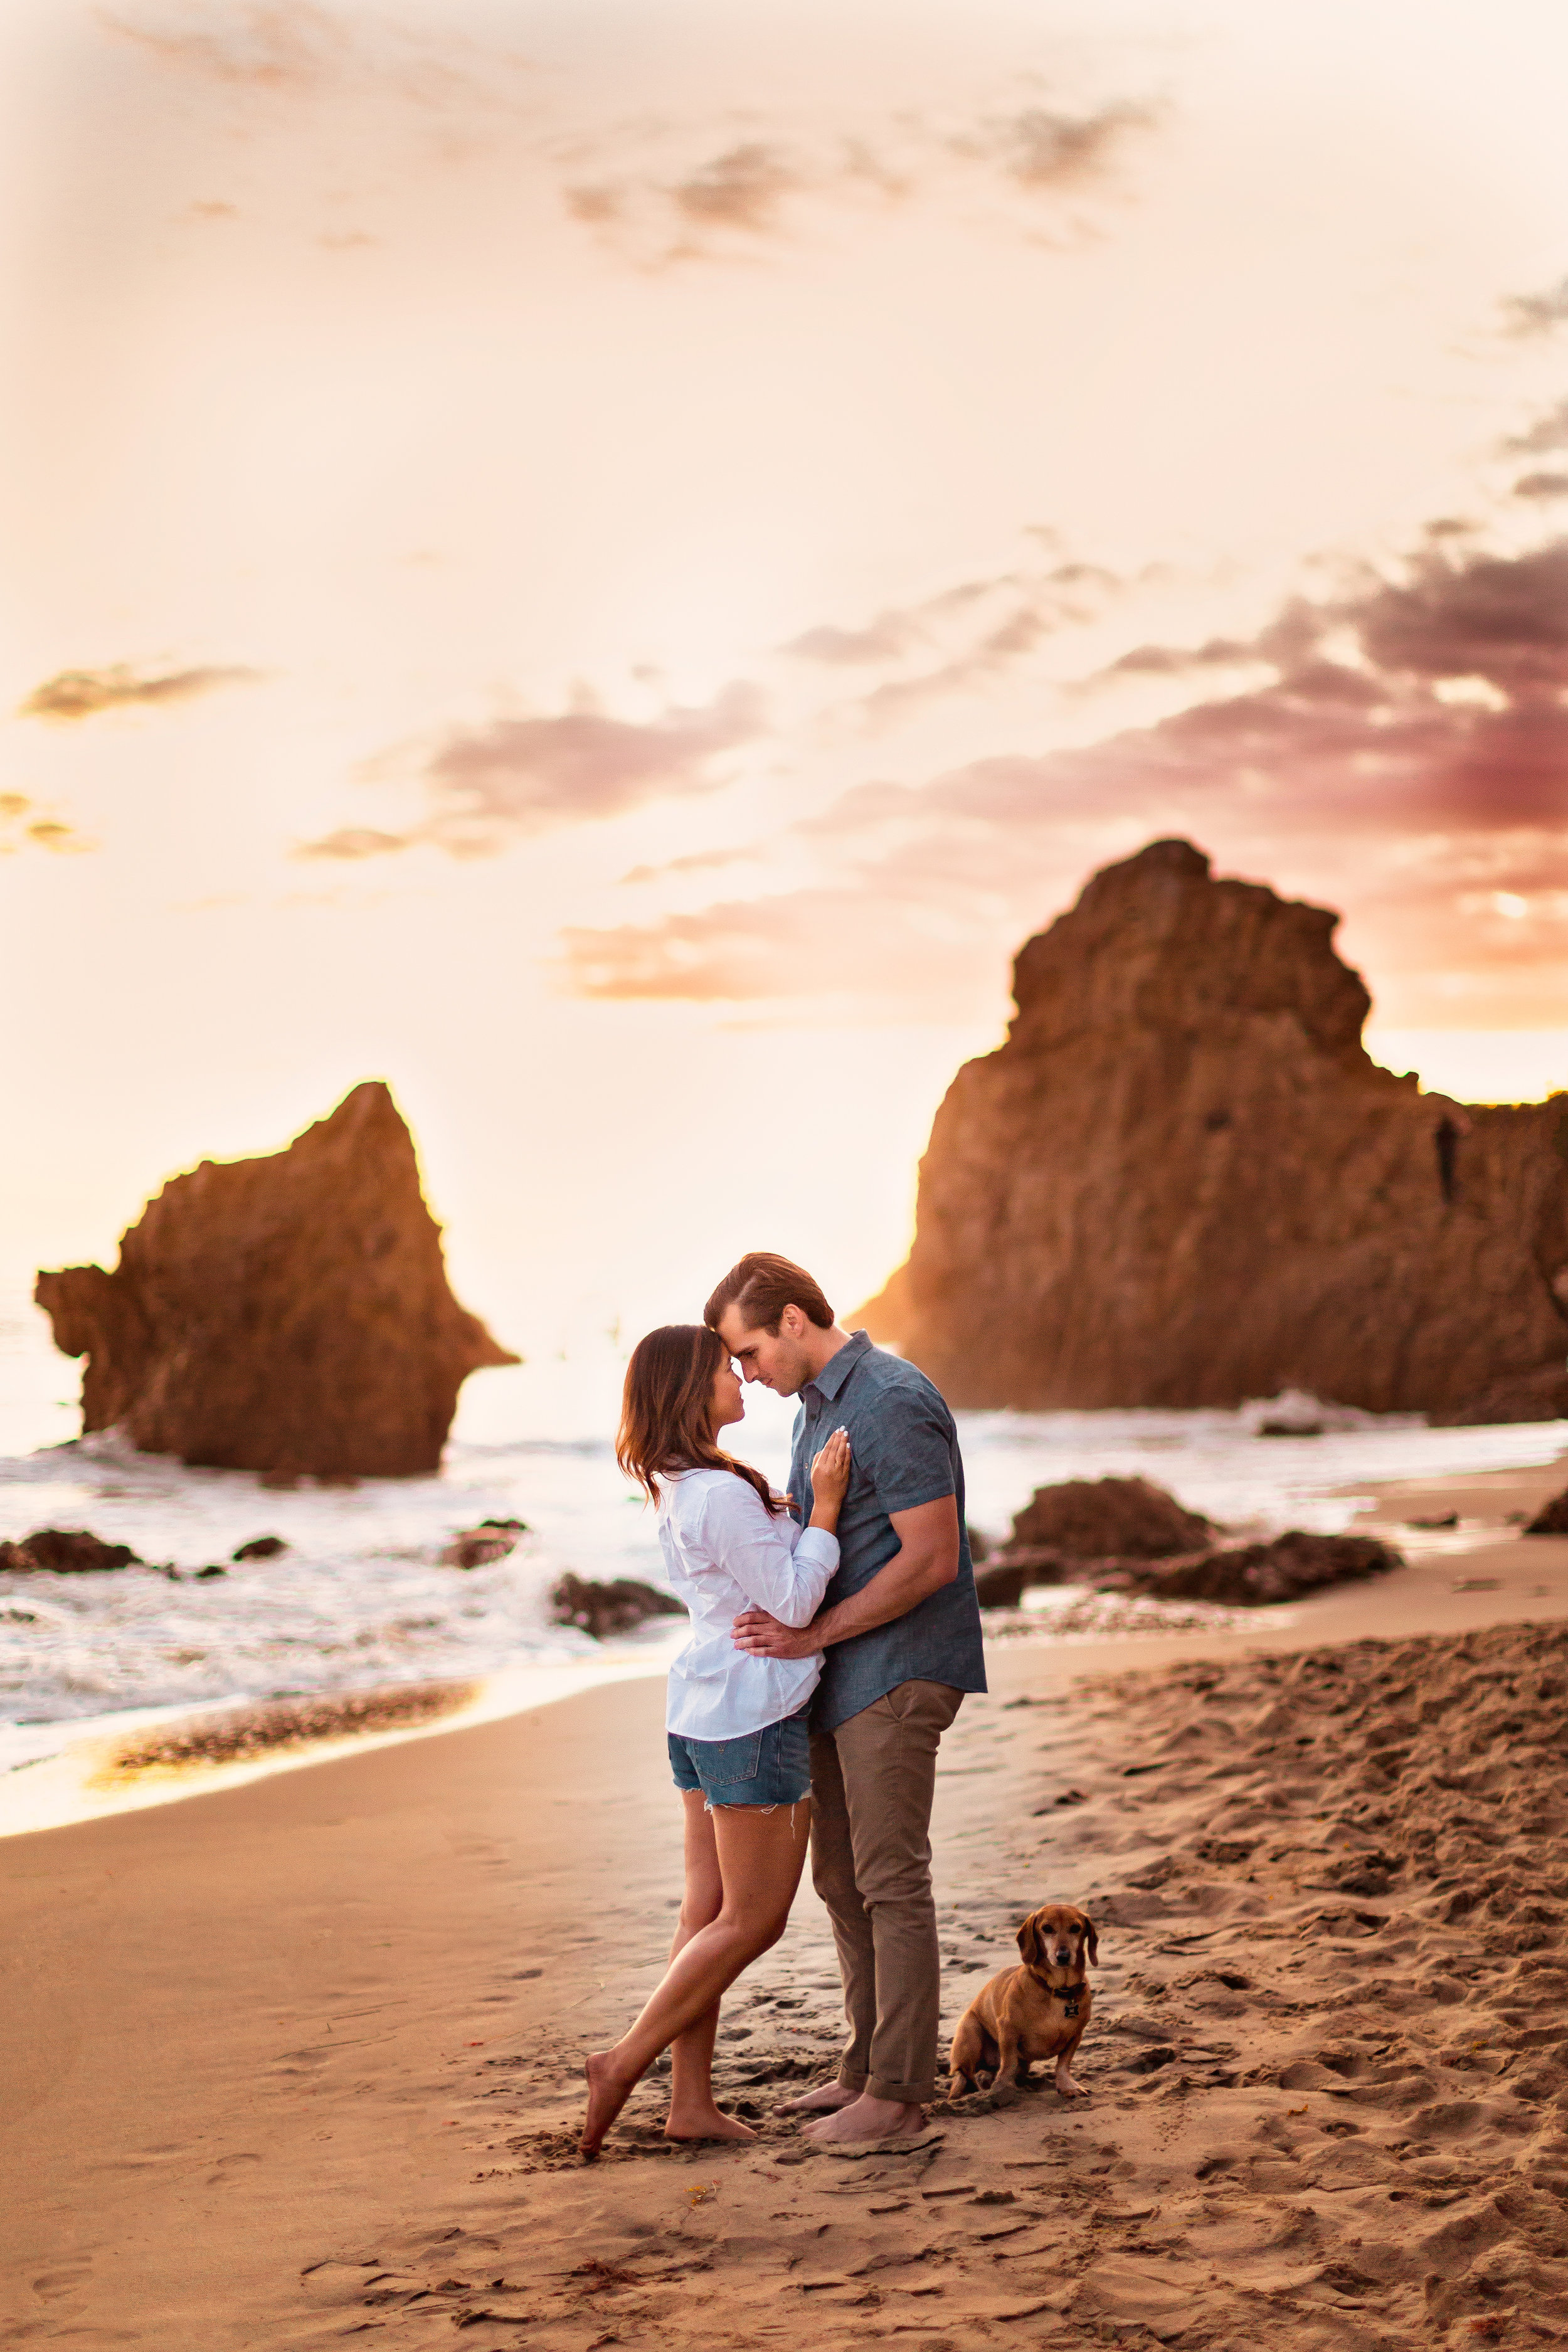 Malibu_Beach_Engagement_Photo-0001.jpg